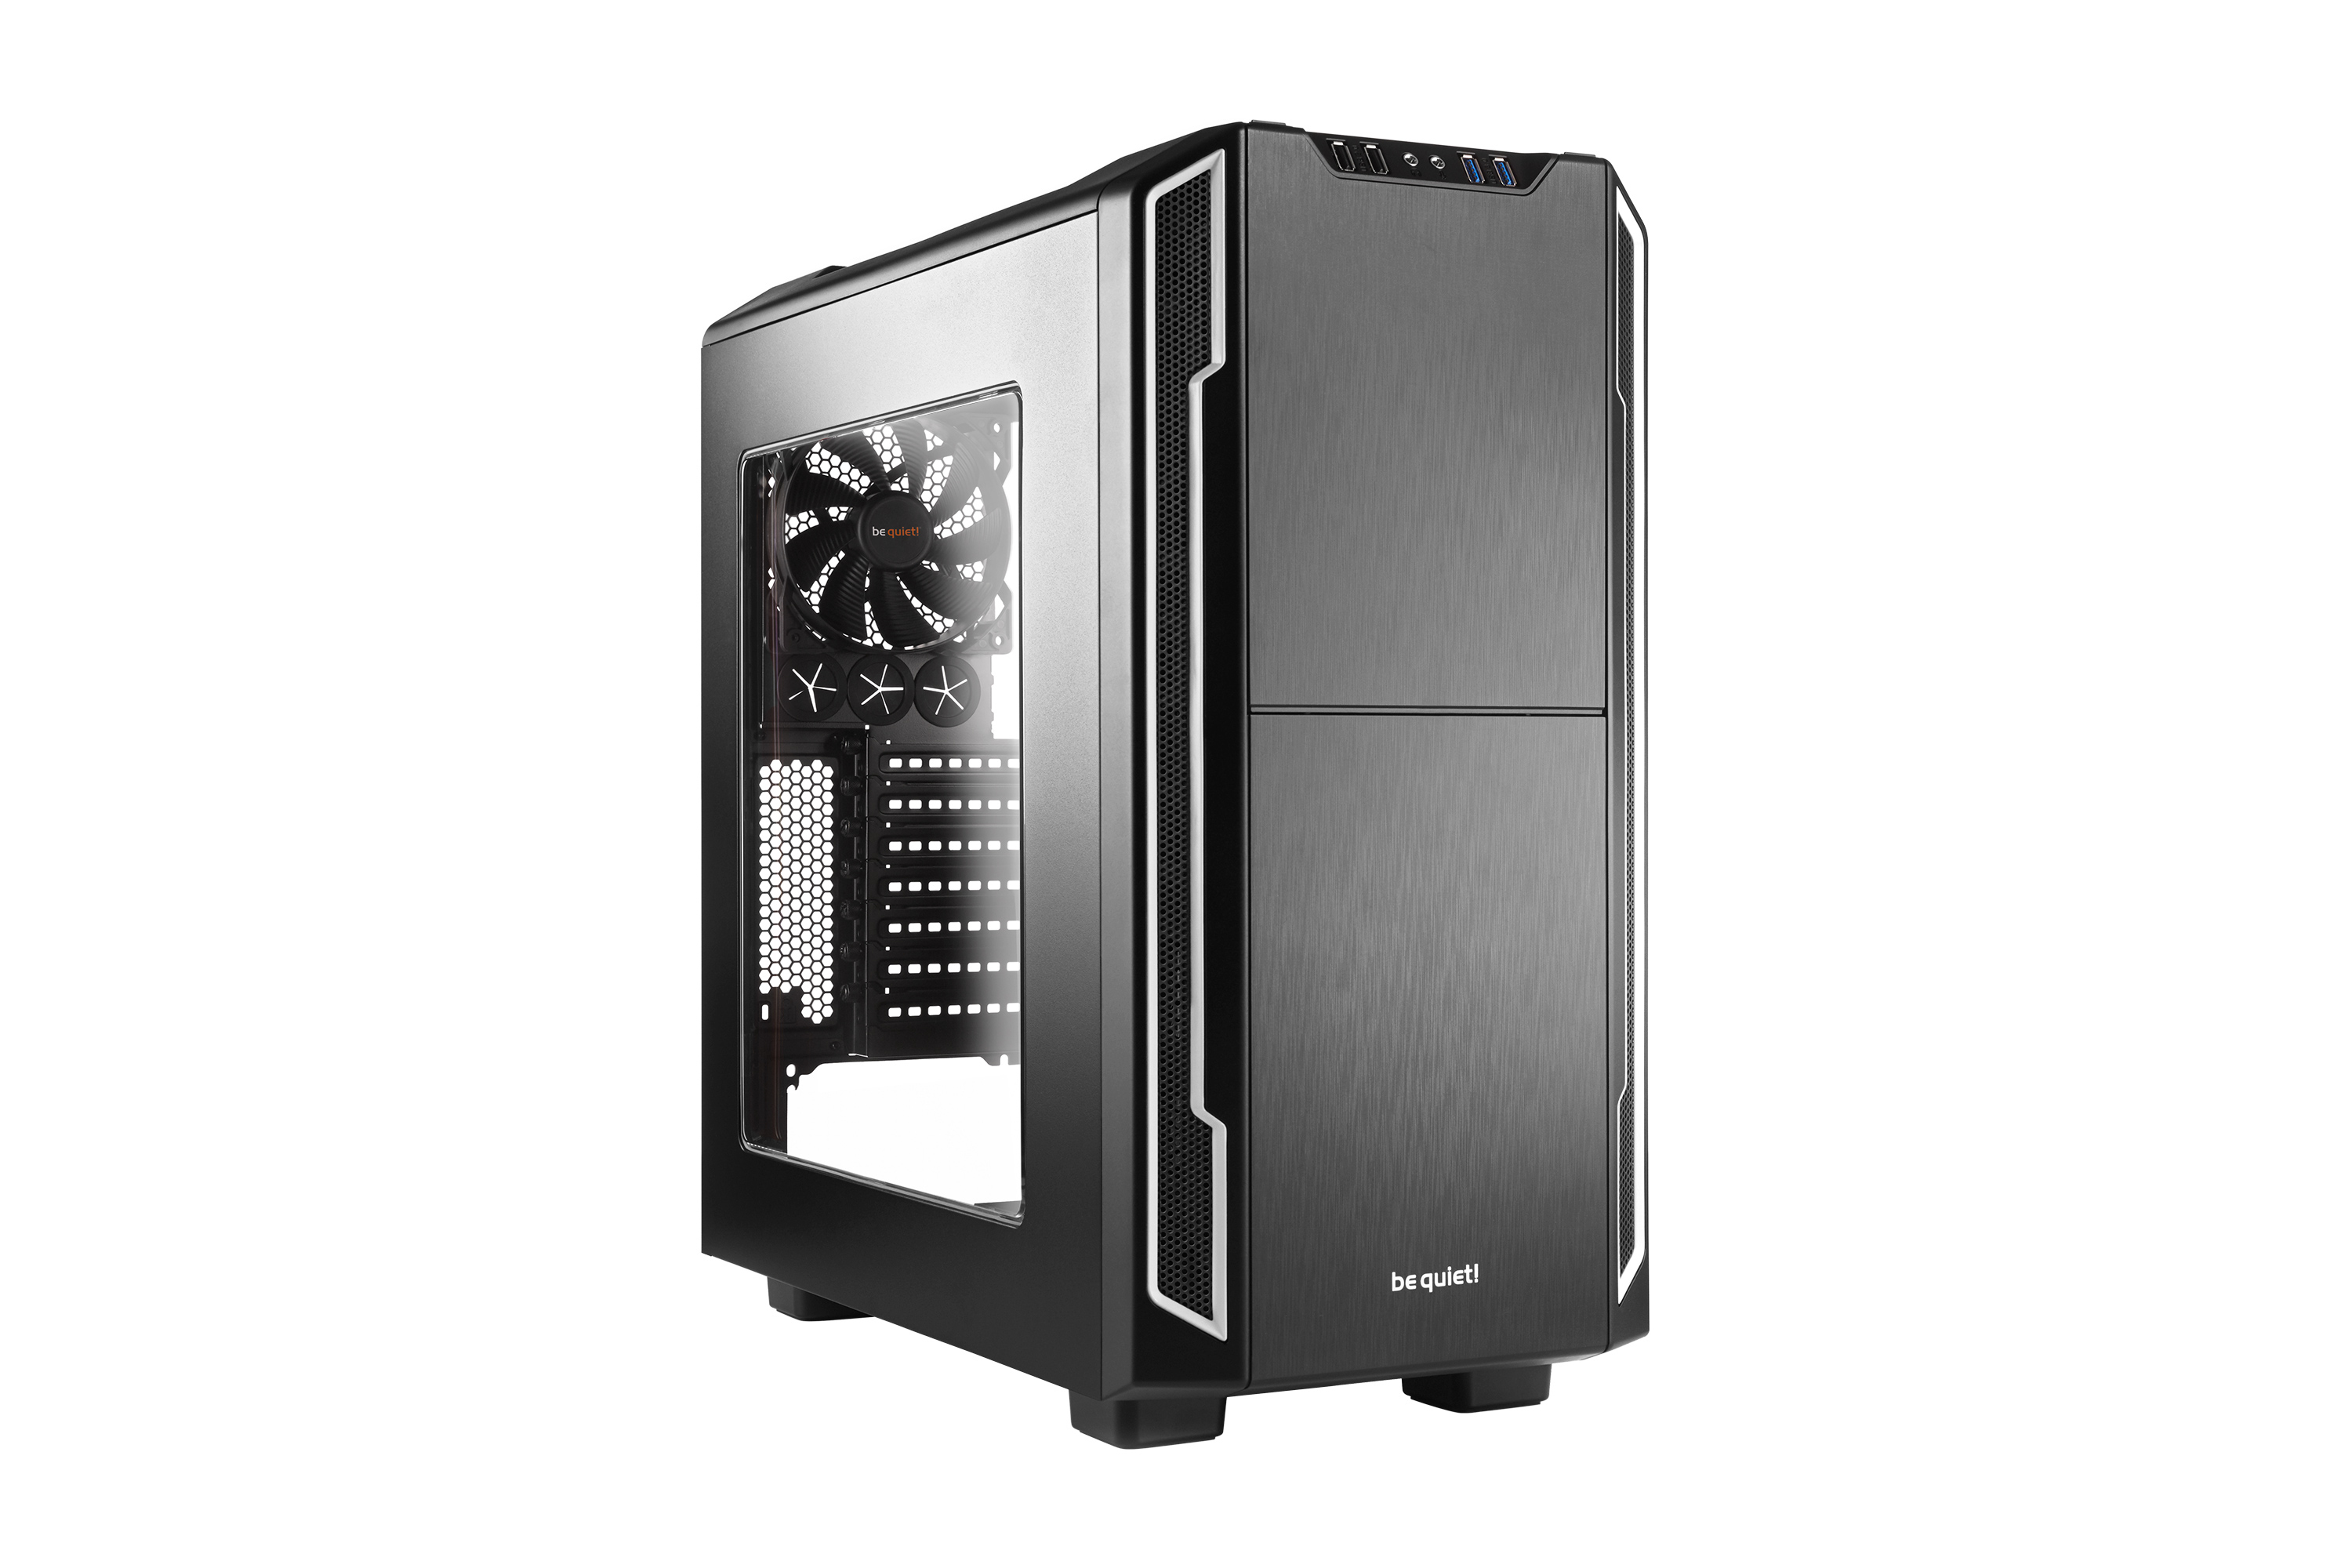 be quiet! Silent Base 600 Window Silver, 495 x 230 x 493, IO-panel 2x USB 3.0, 2x USB 2.0, HD Audio, 3x 5,25, 3x 3,5, 3x 2,5, inc 1x 140 mm en 1x 120 mm fan, dual air channel cooling,